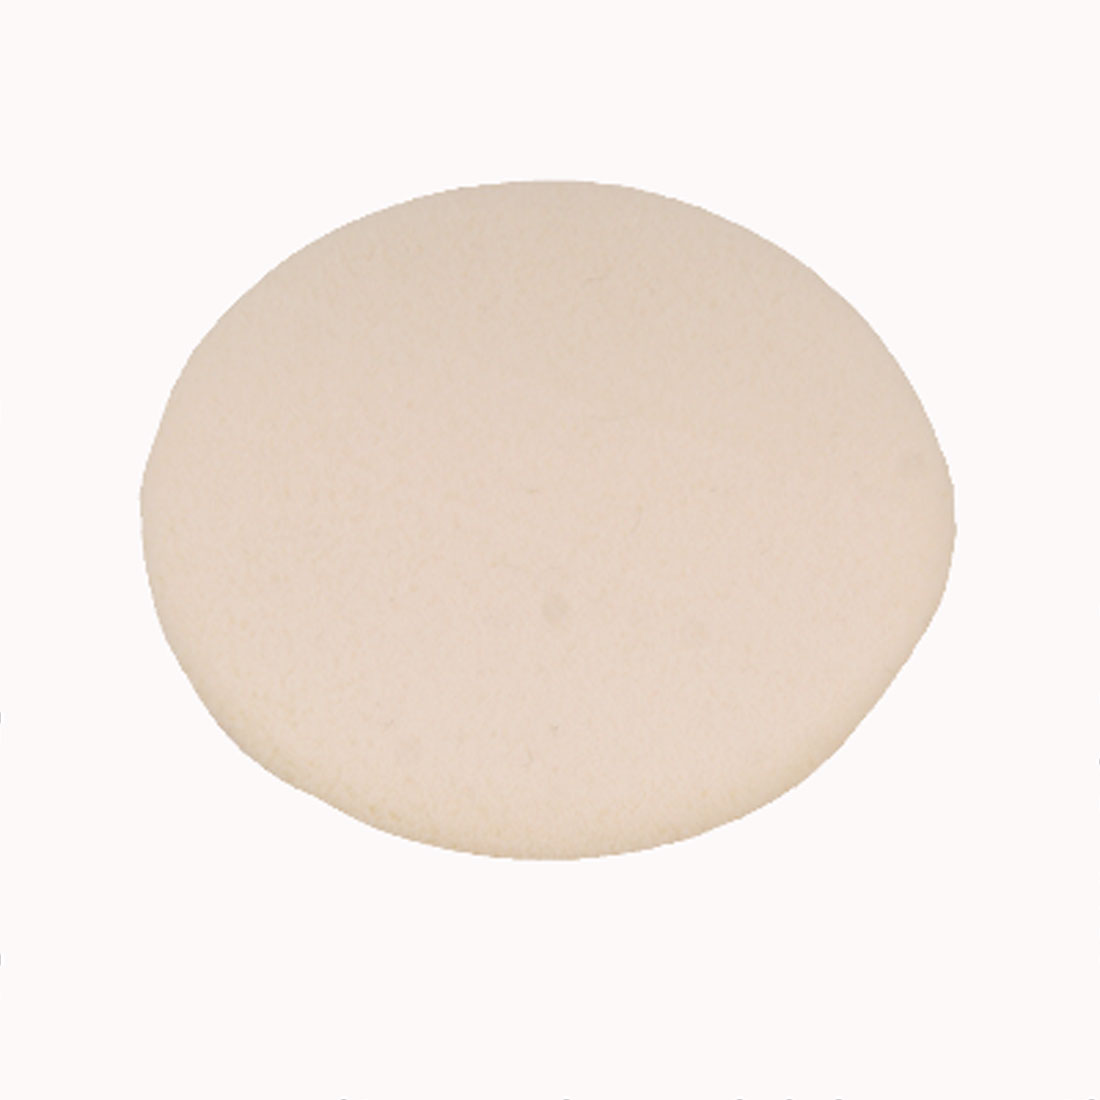 2 Pcs Facial Face Round Flesh Color Sponge Cosmetic Powder Puff